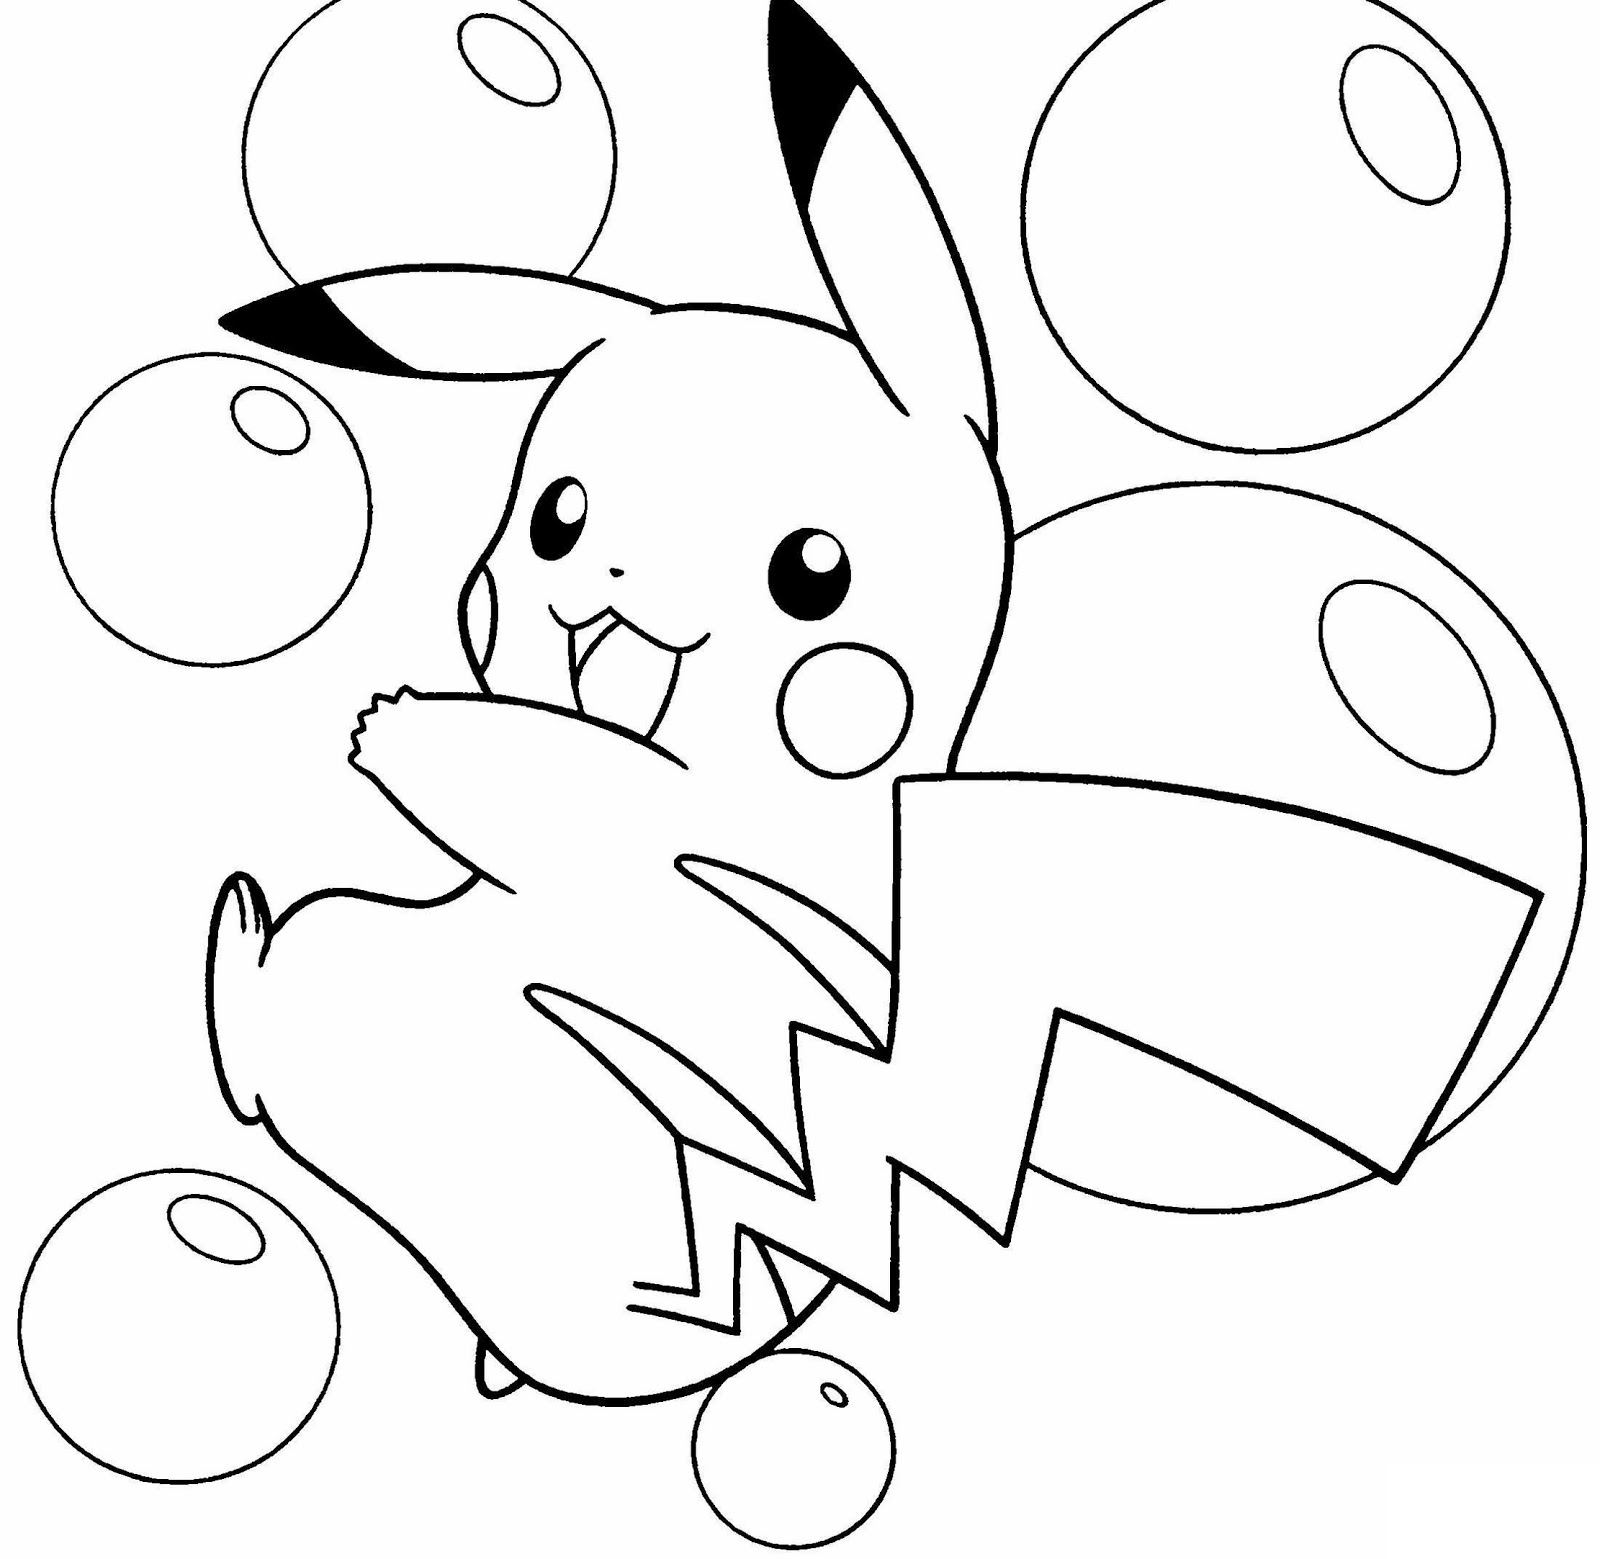 awesome pikachu pokemon drawing for kids to color